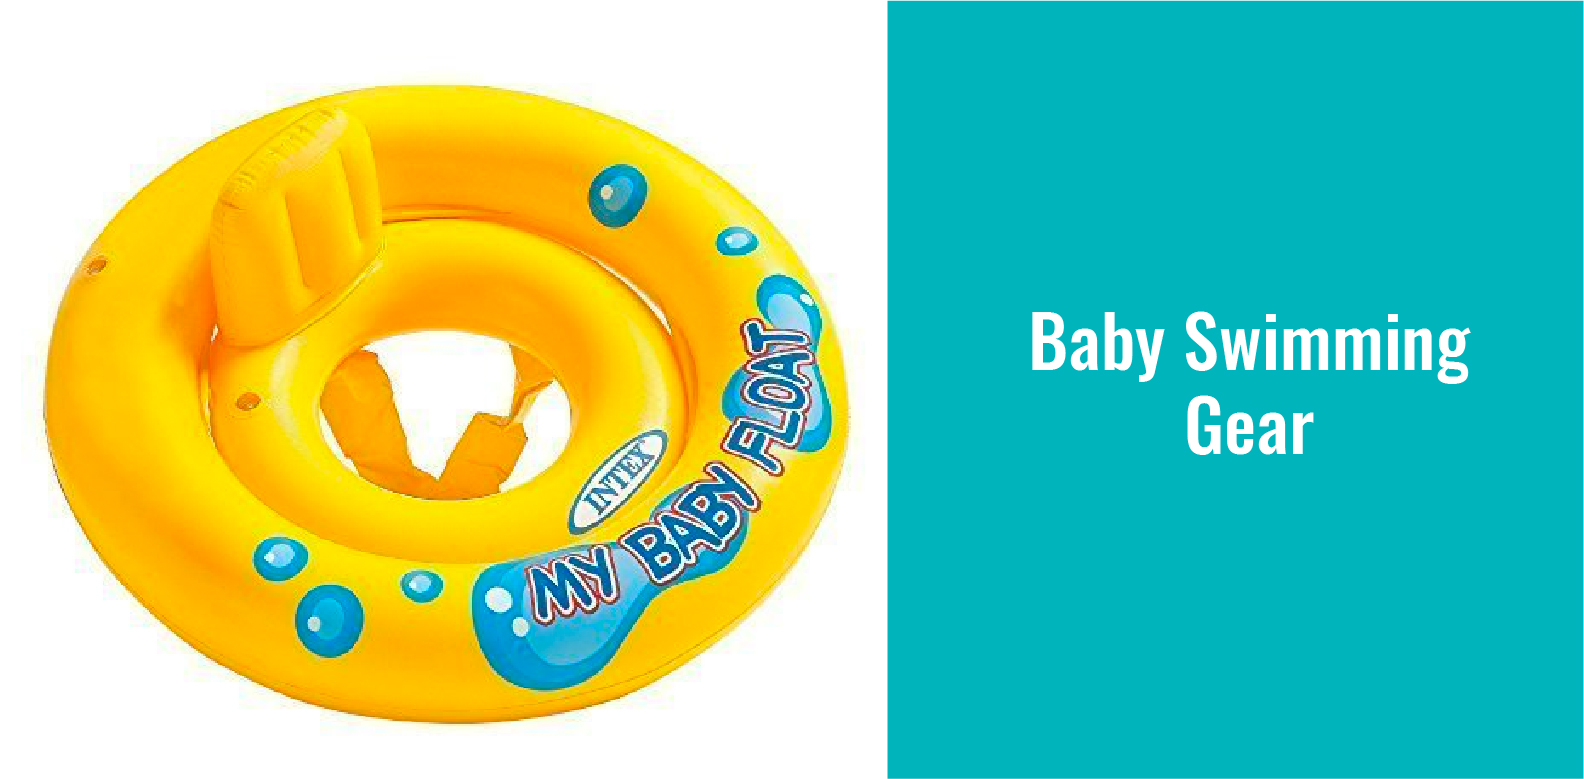 Baby Swimming Gear